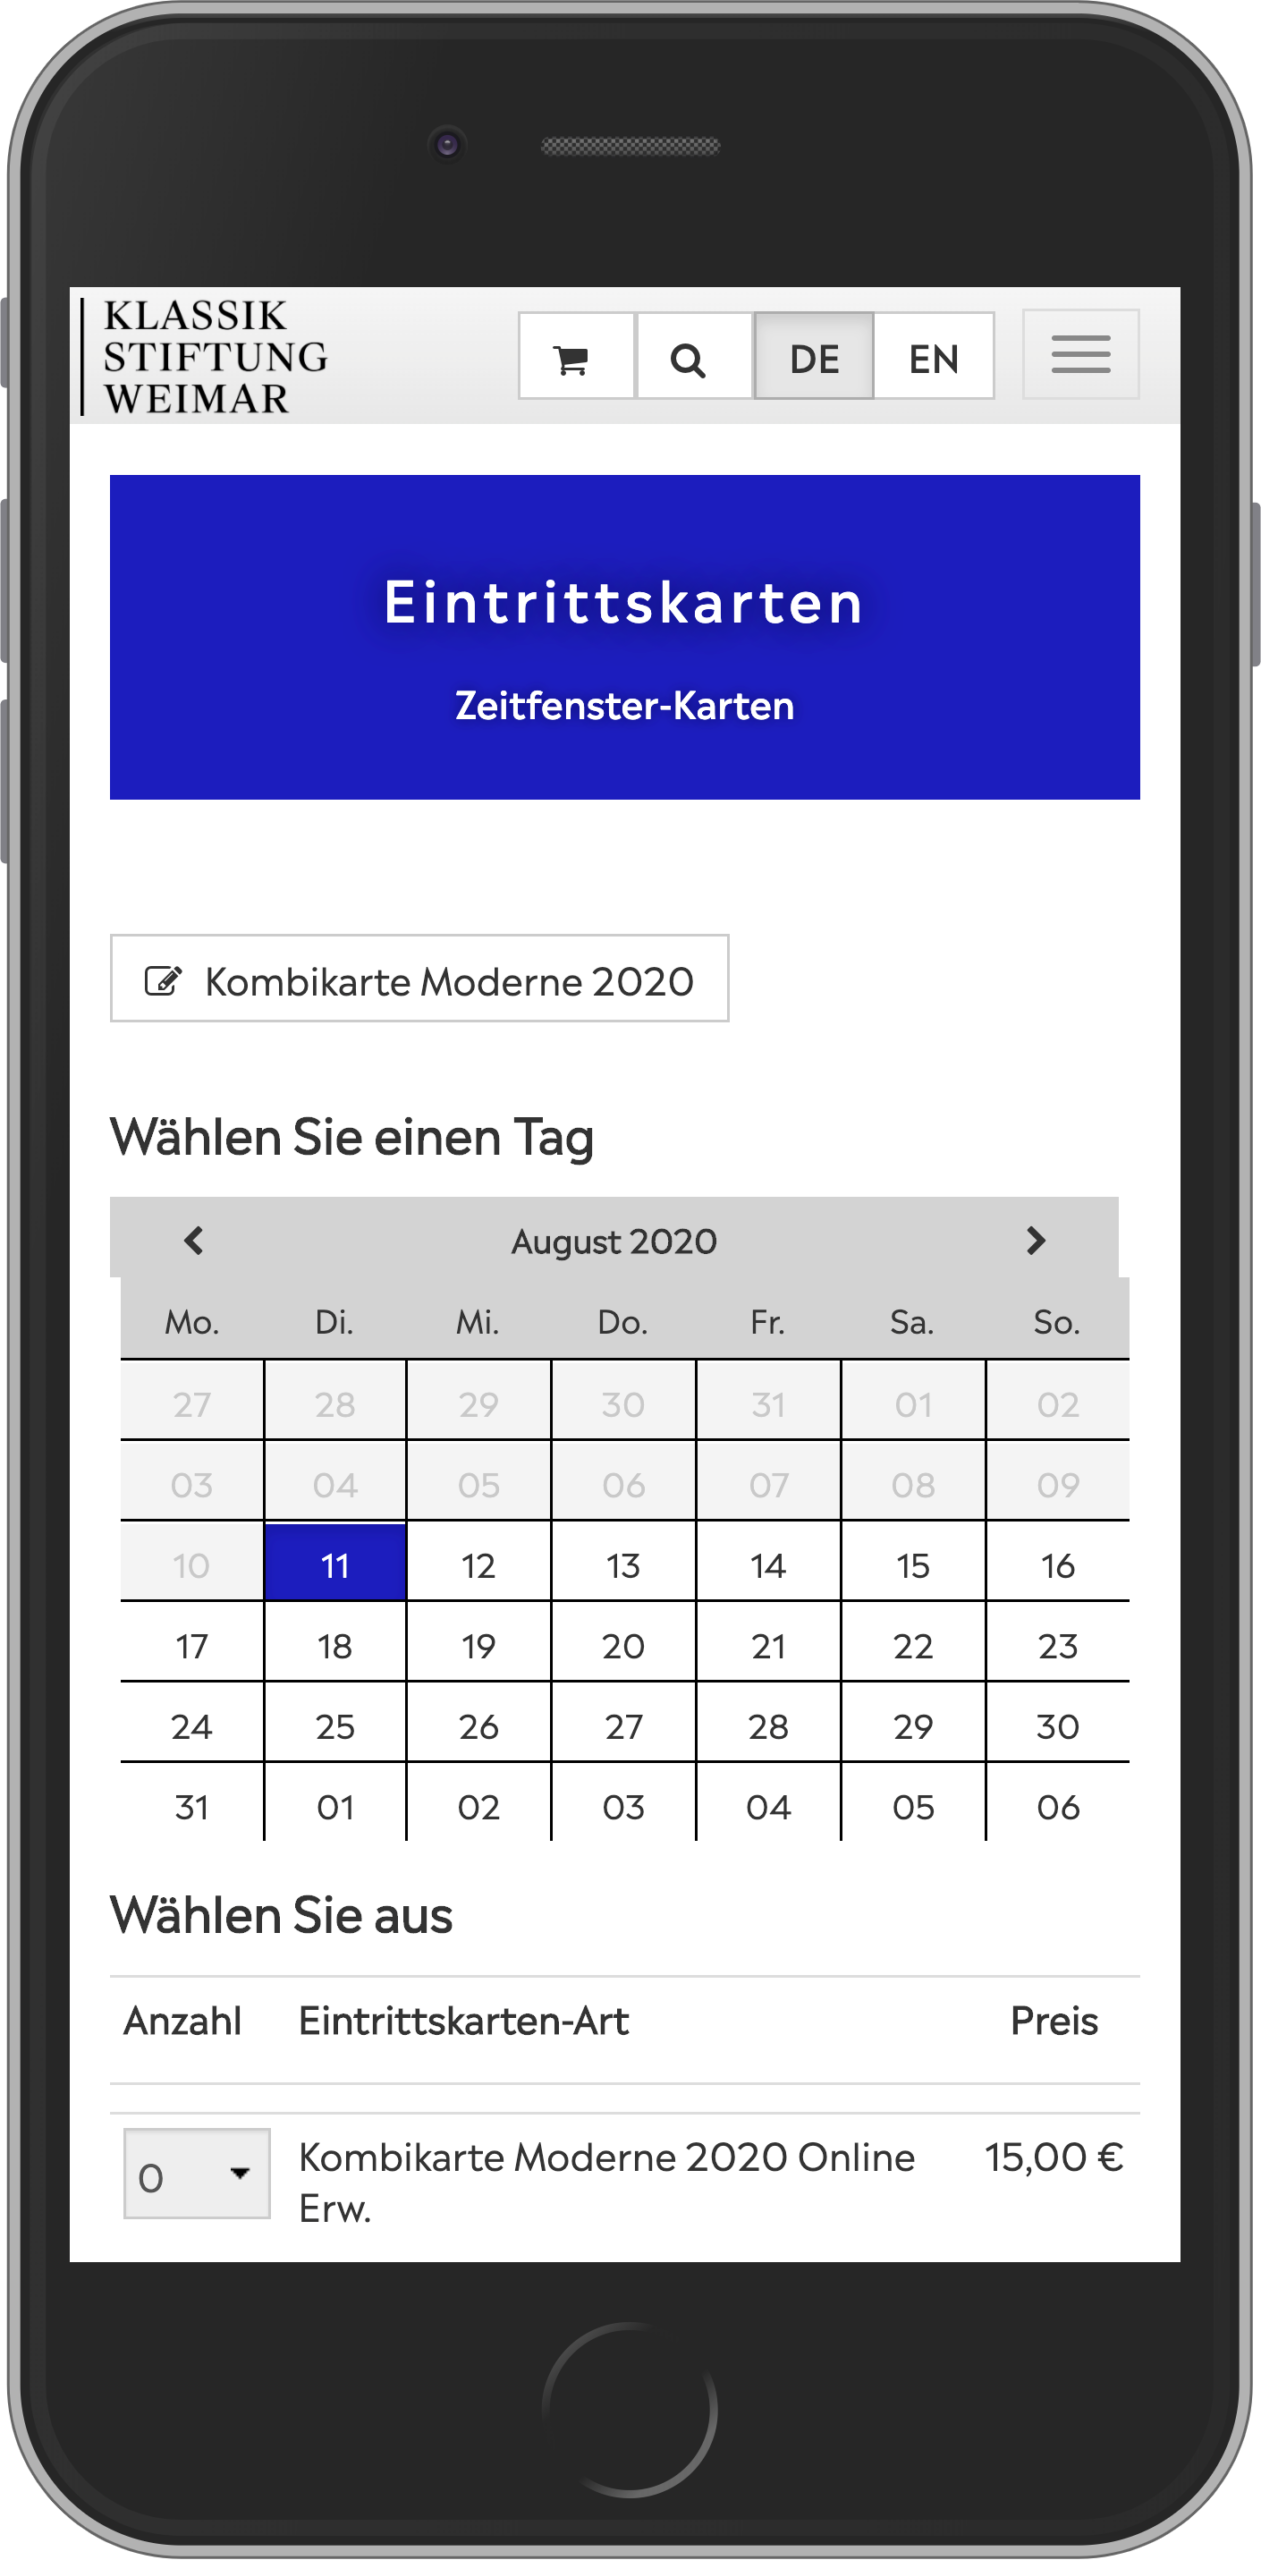 Mobile view of the ticket purchase in the online shop of the Klassik Stiftung Weimar